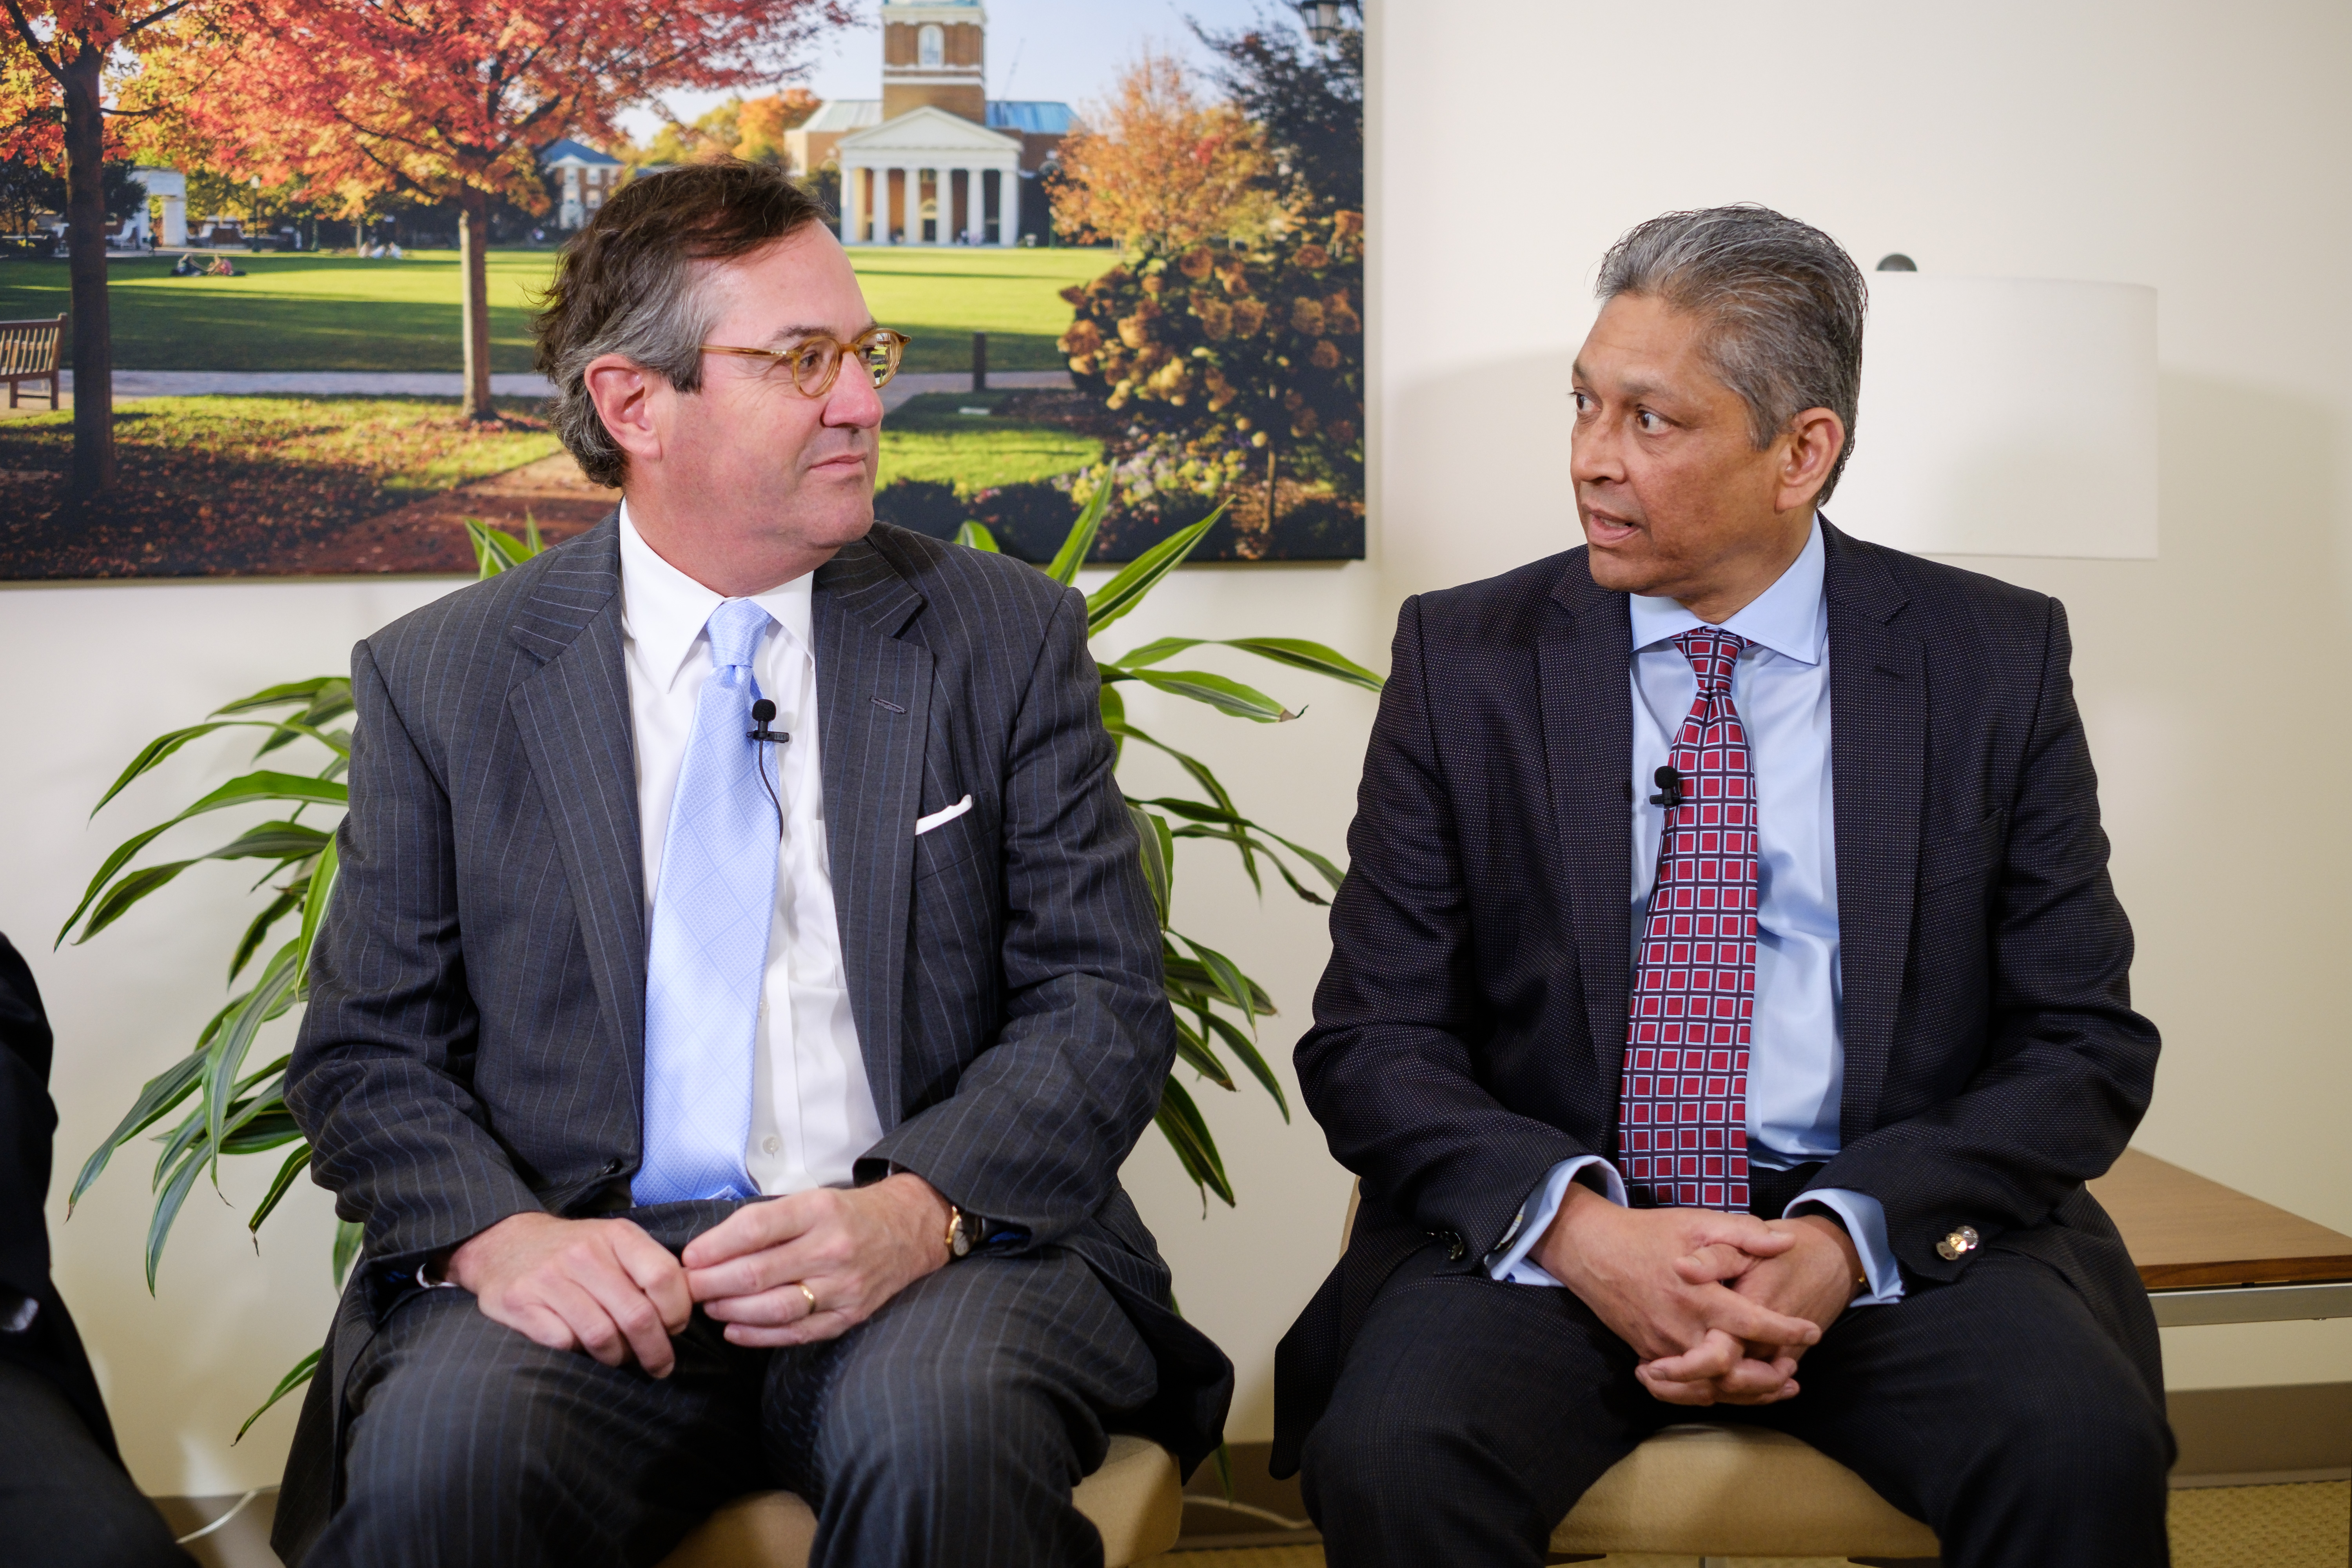 Wake Forest University staff interview Warren Stephens (MBA '81), with professor emeritus Tom Goho and professor Ajay Patel, in Farrell Hall on Wednesday, March 23, 2016. Patel holds the Goho Chair supported by Stephens.